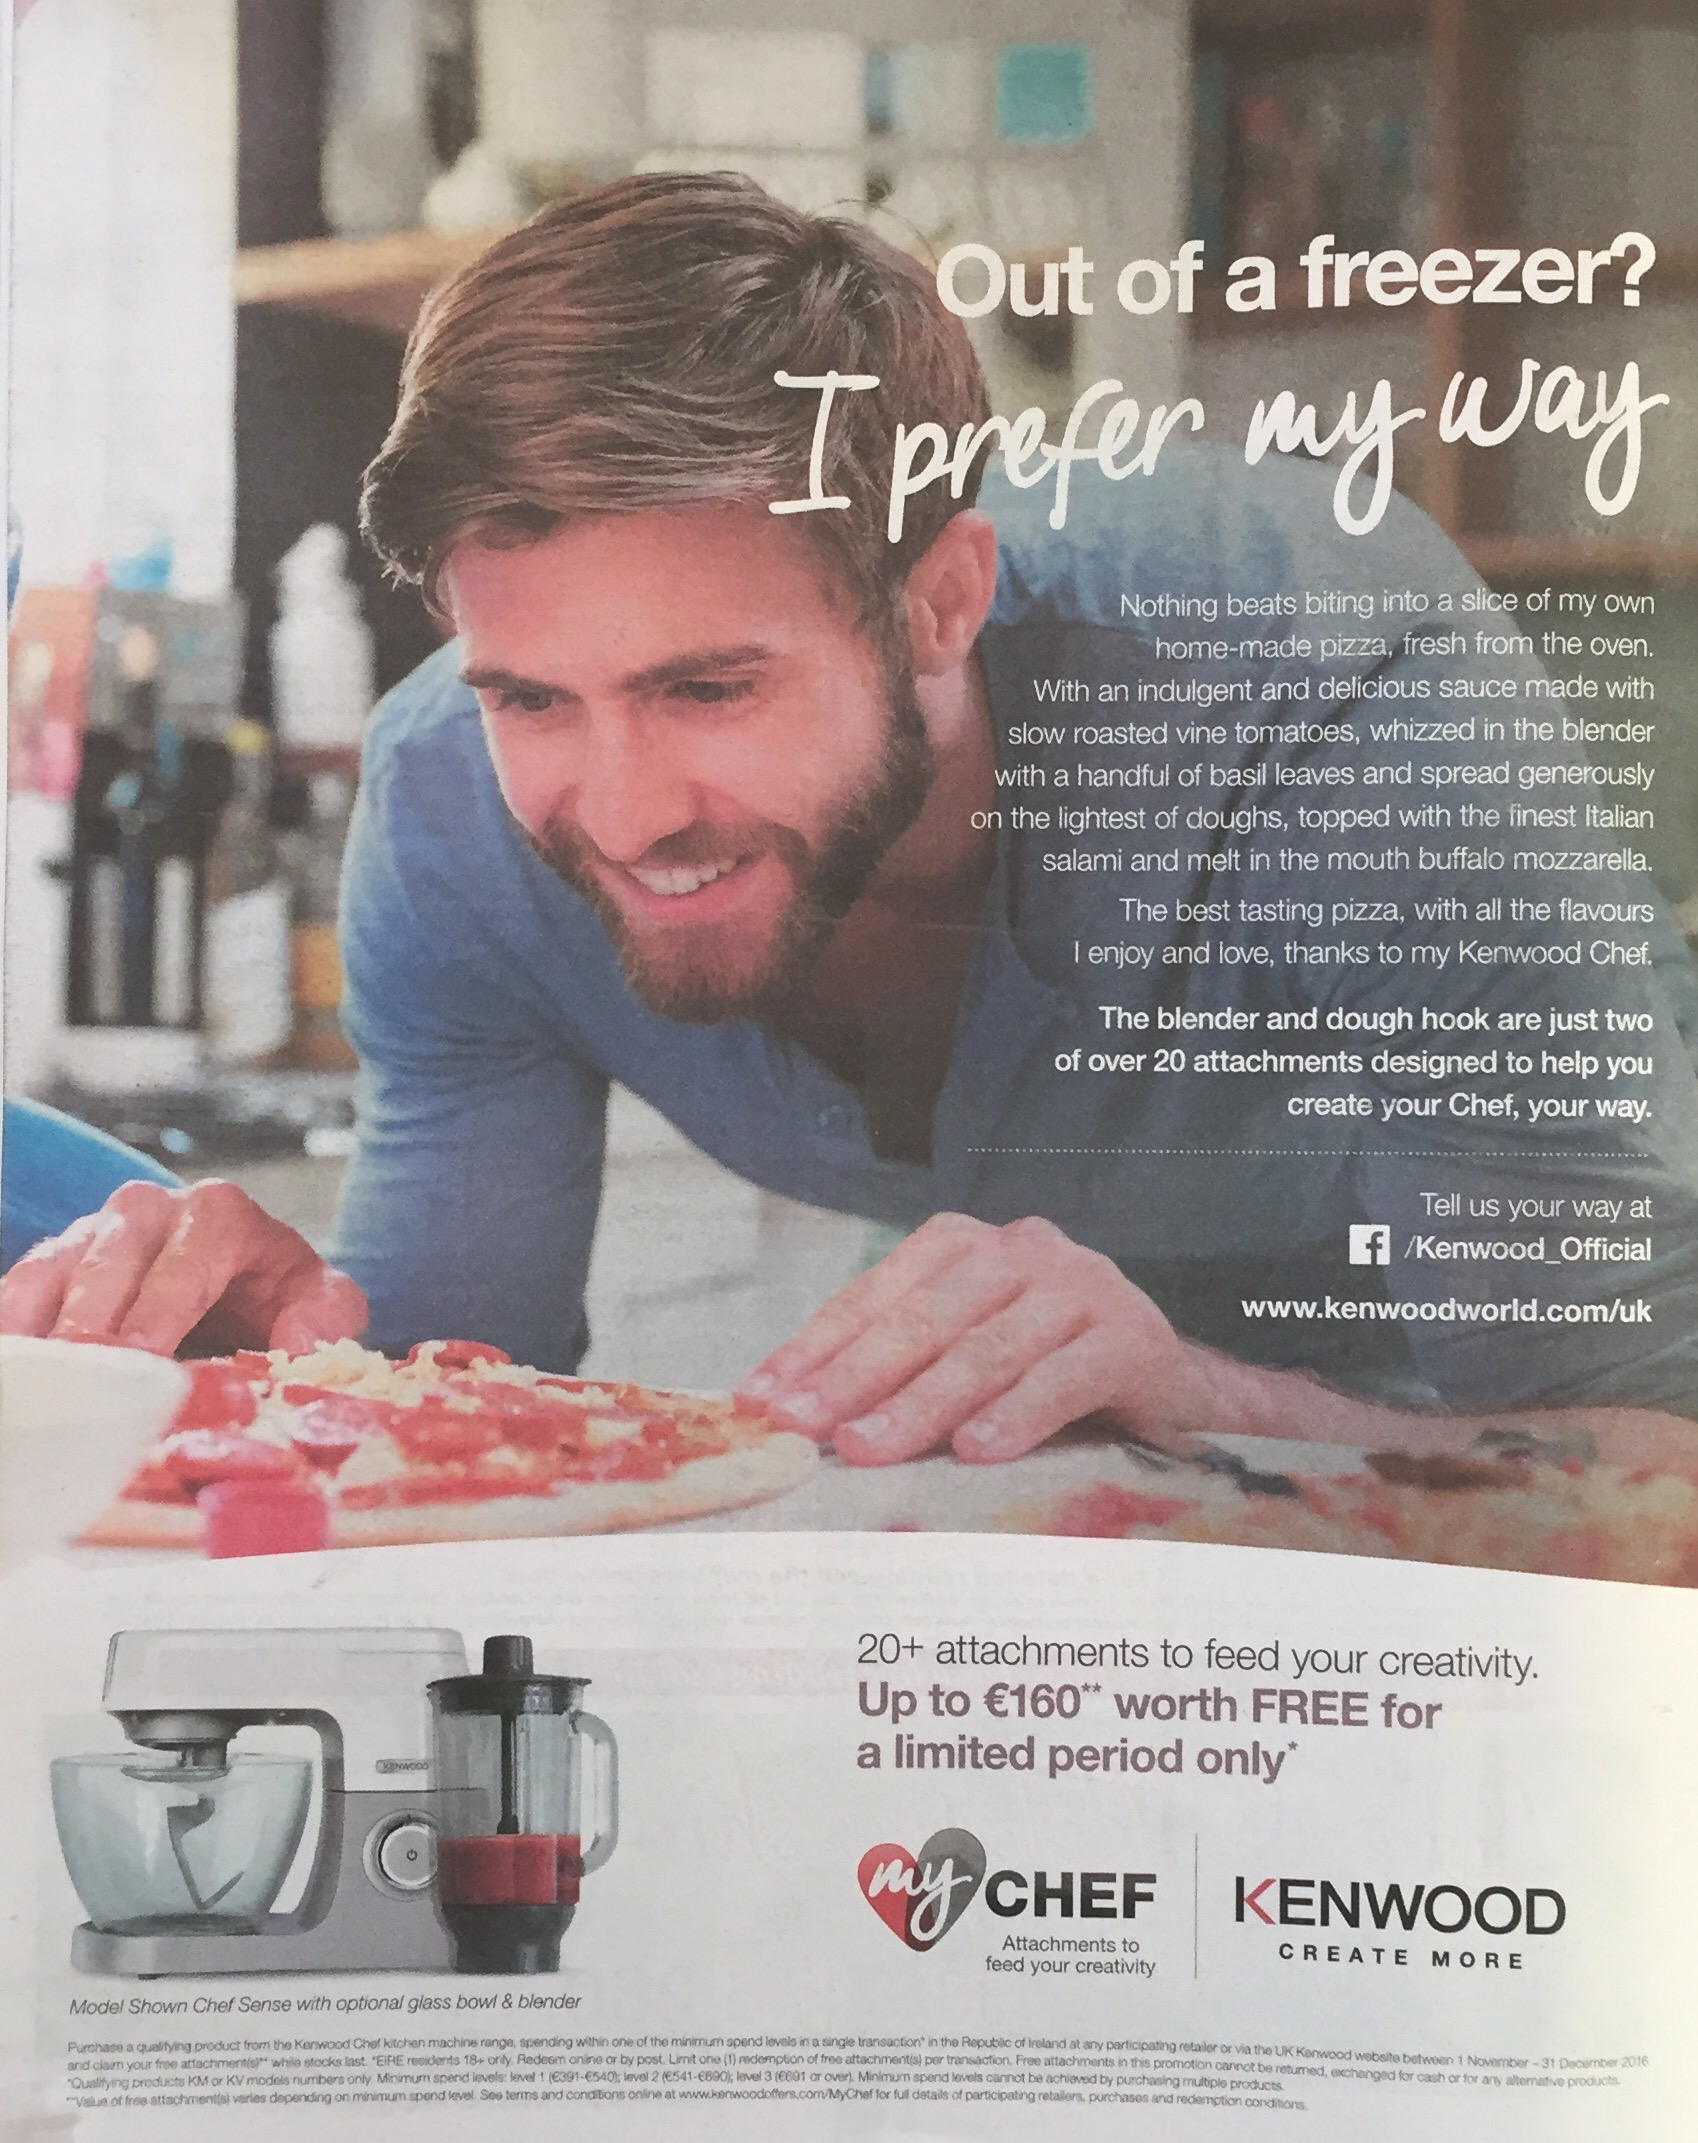 Kenwood my chef – Out of a freezer? I prefer my way